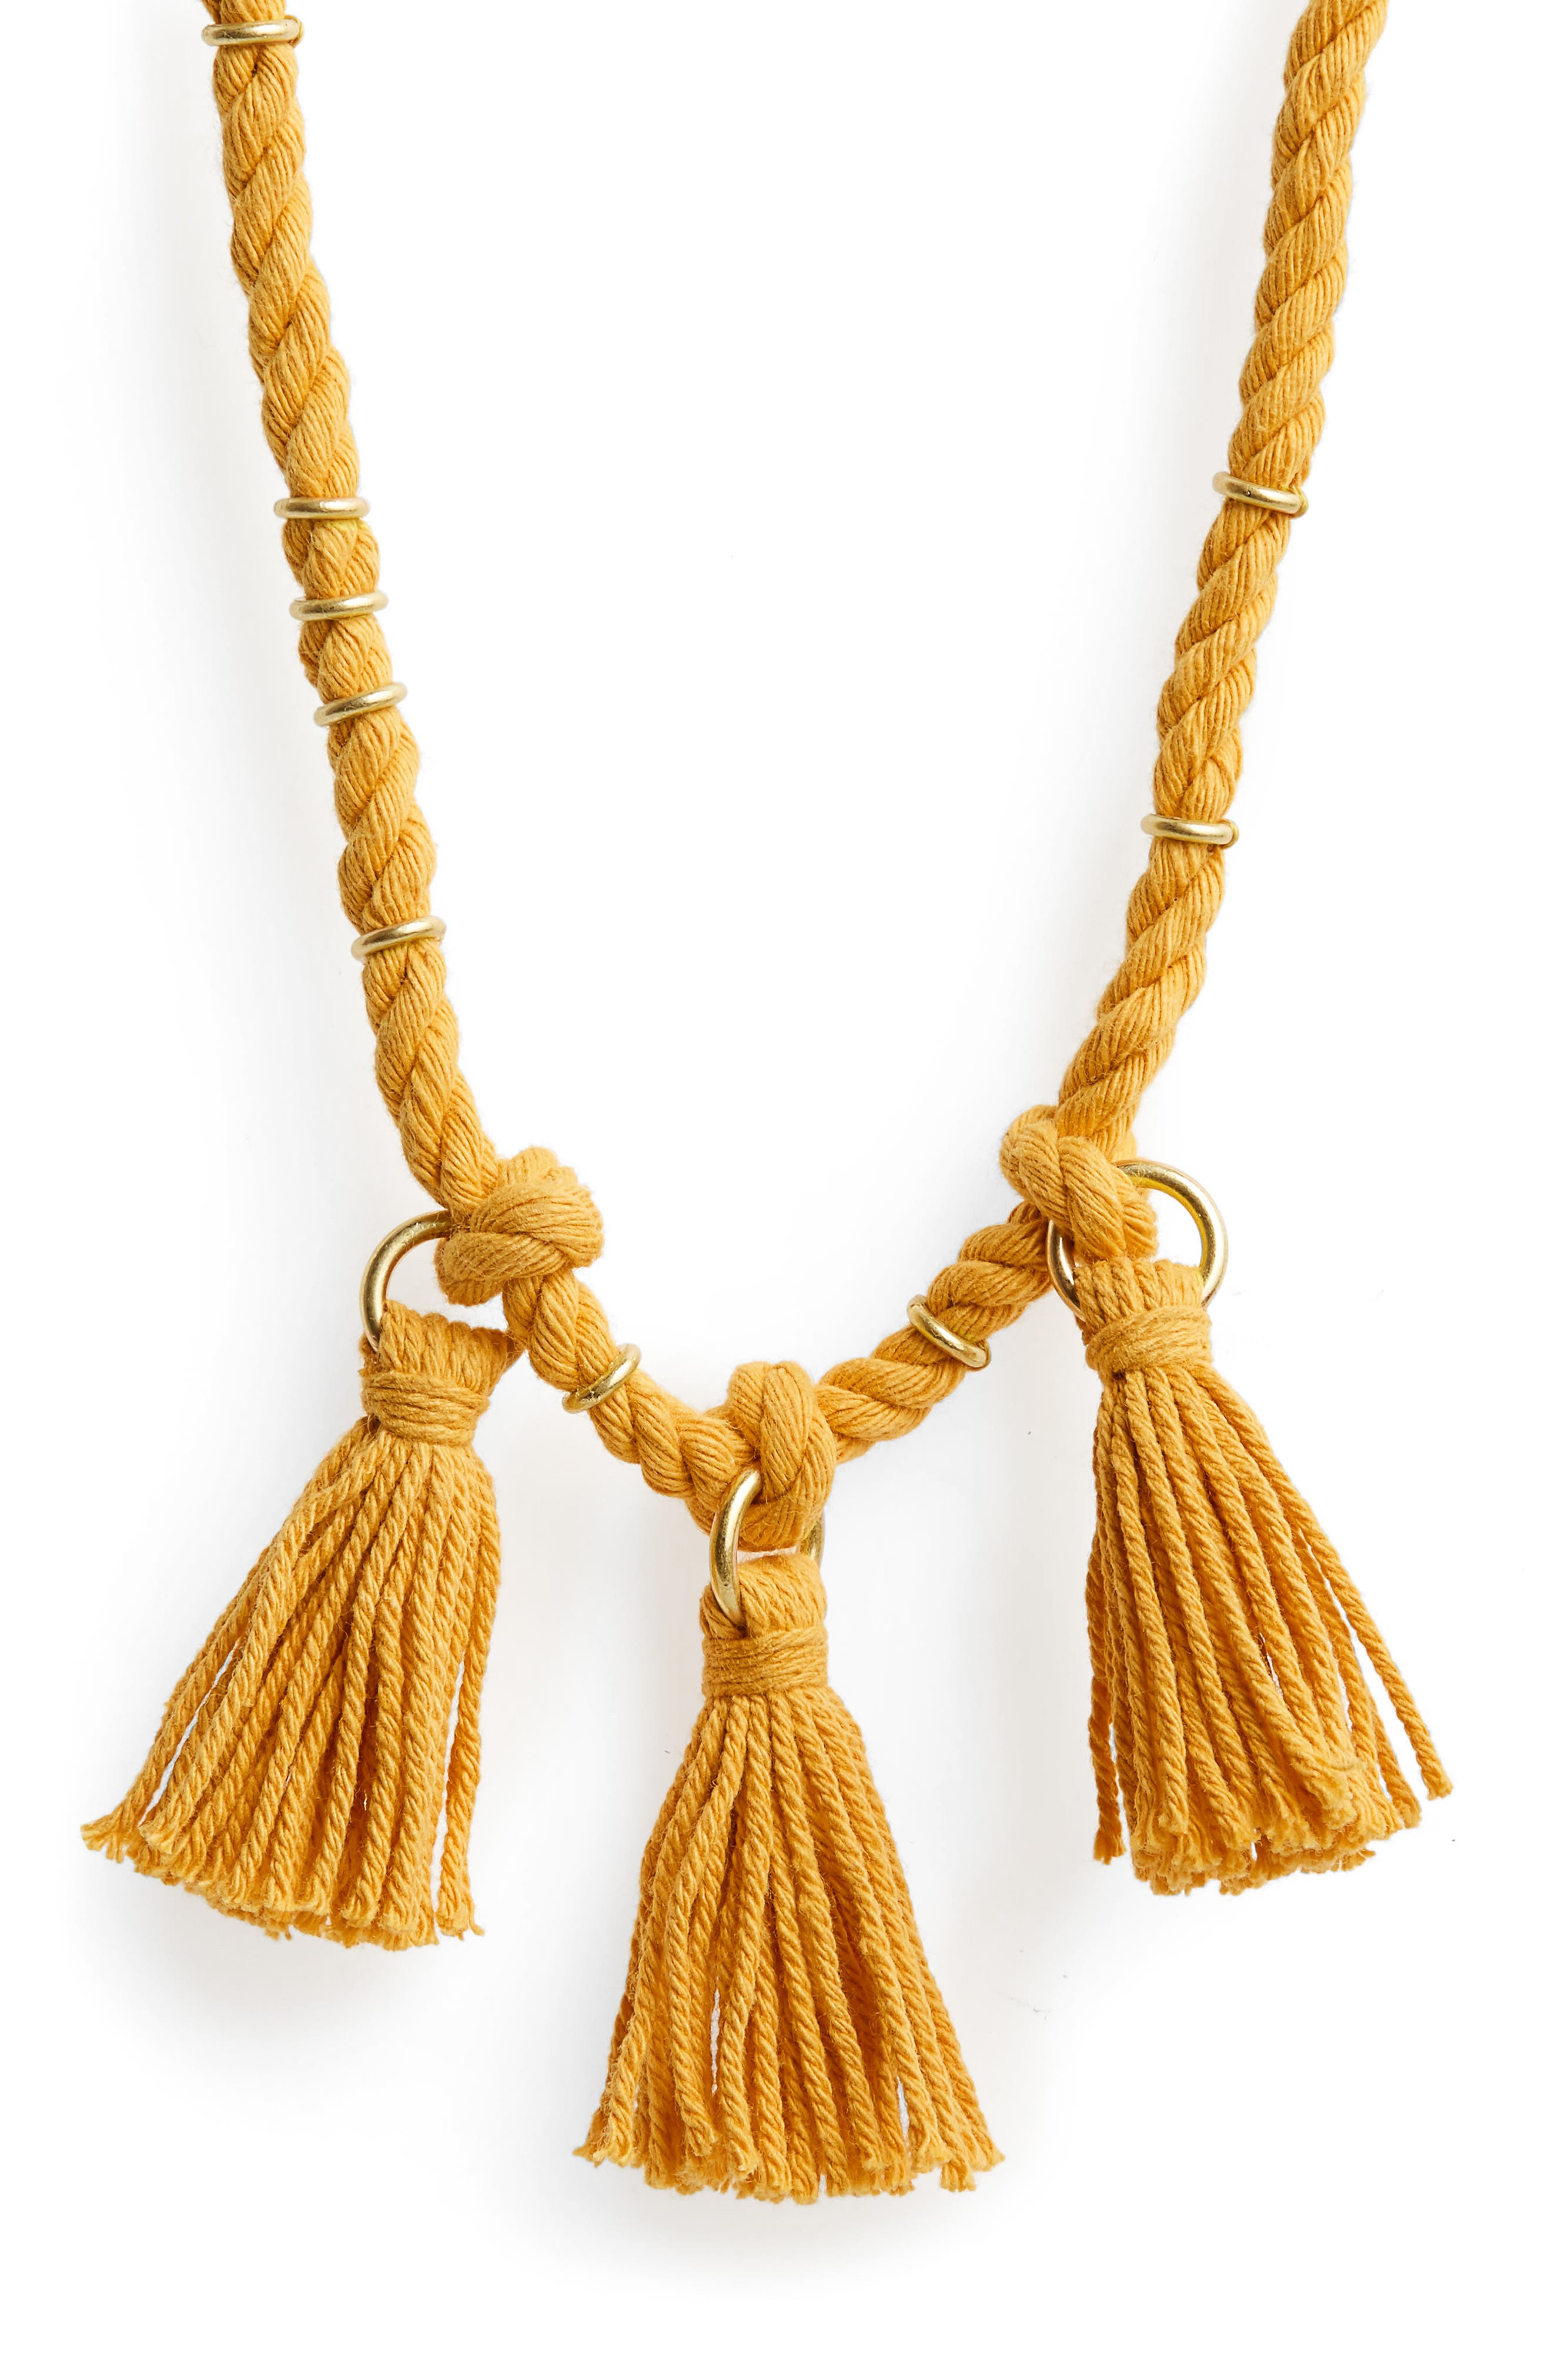 Rope & Tassel Necklace,                             Alternate thumbnail 2, color,                             Nectar Gold